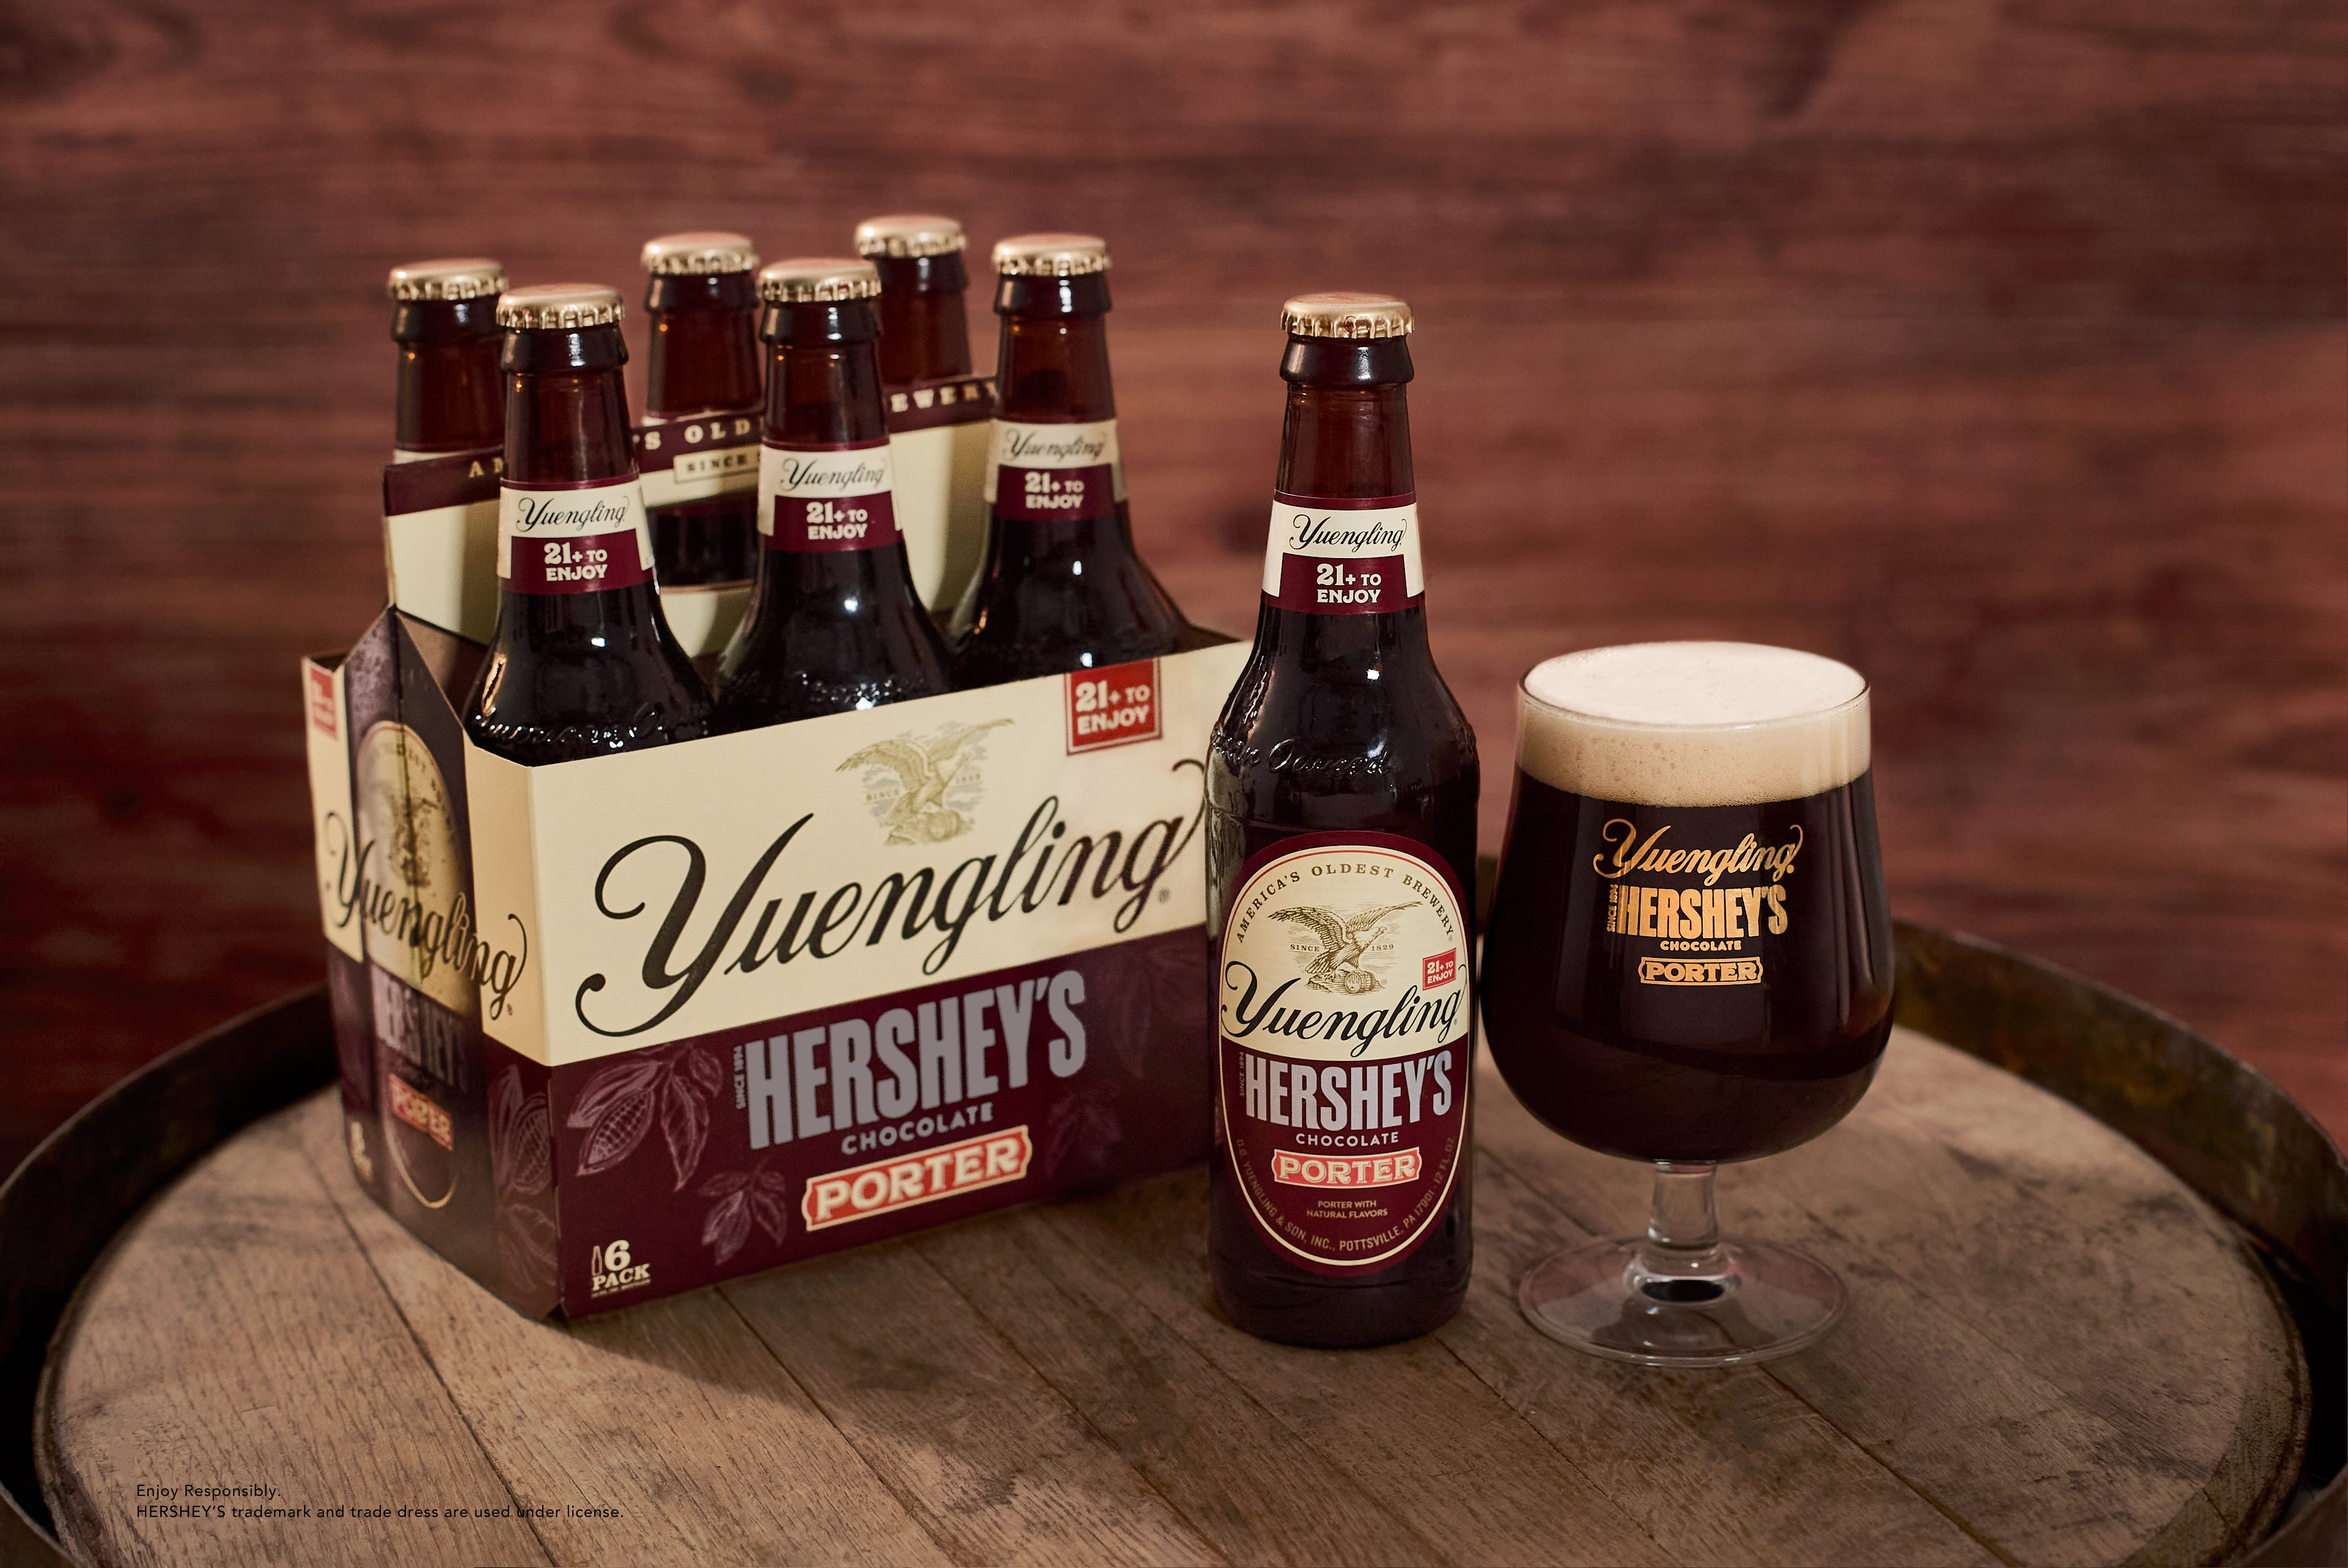 Beer for dessert? Sure, now that you can take home Yuengling Hershey's Chocolate Porter